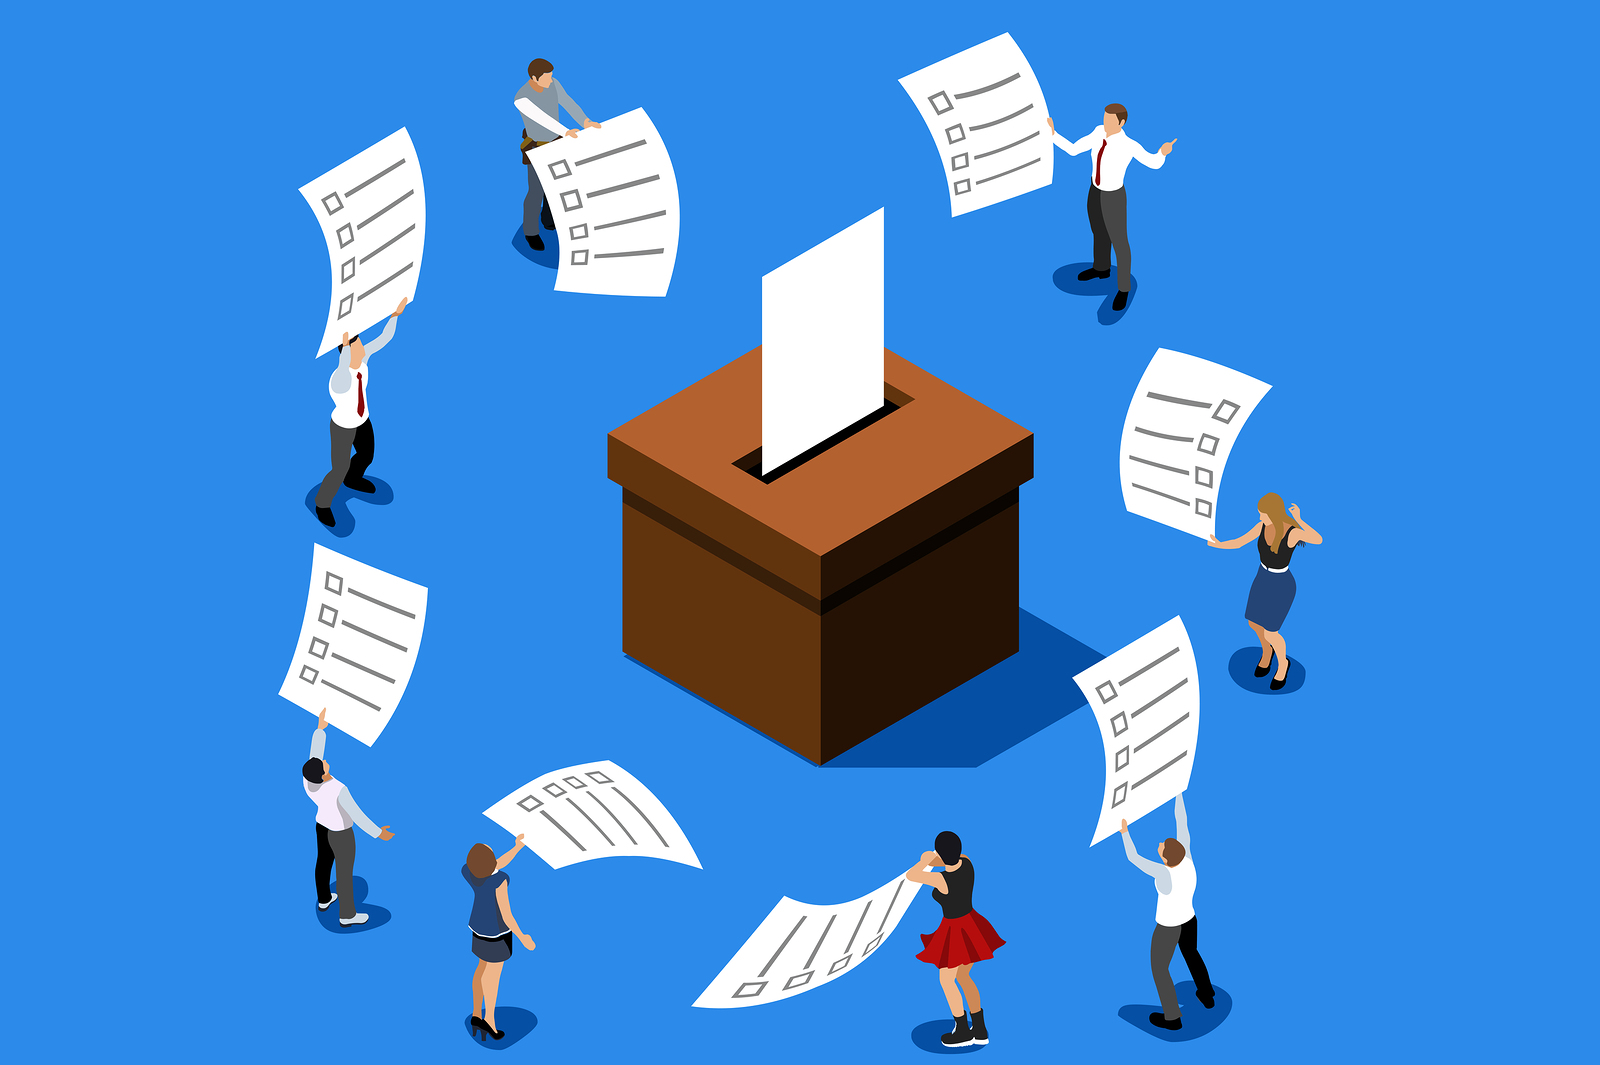 Solana Beach plans switch to district elections by 2020